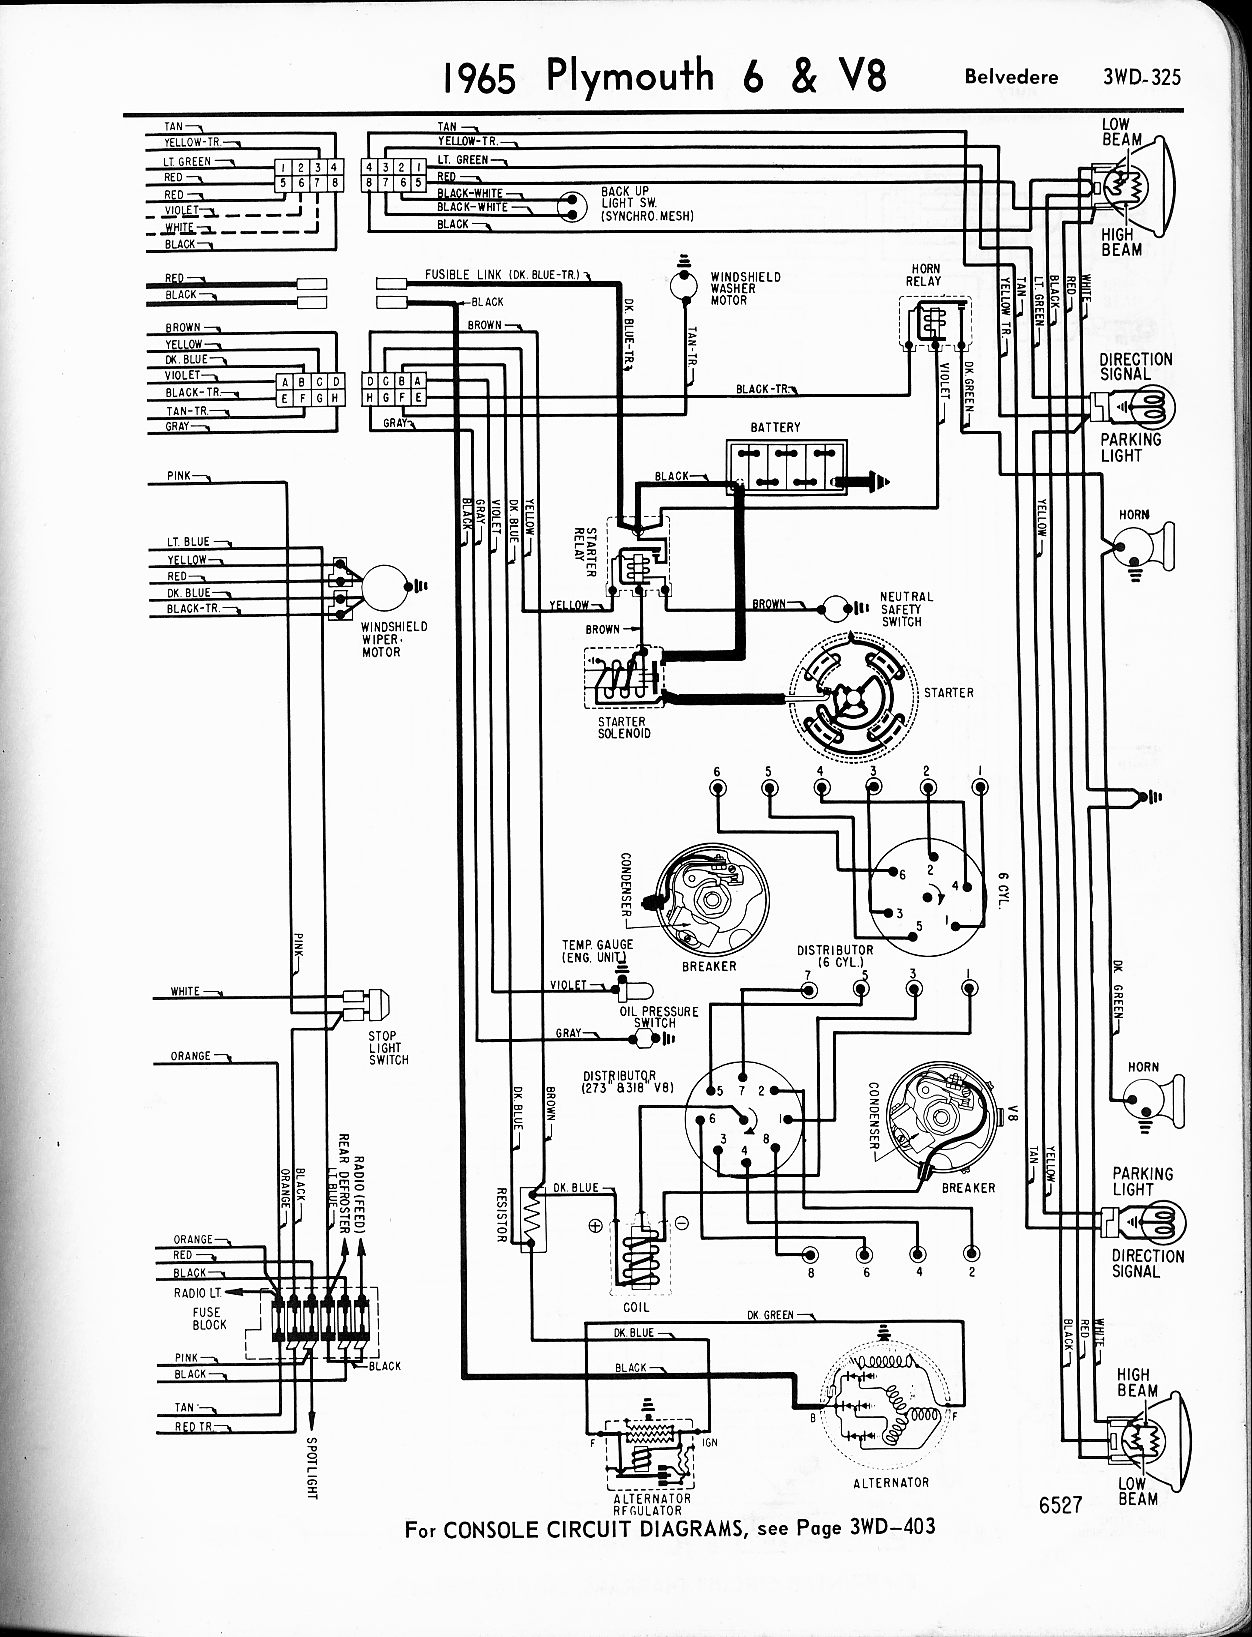 1970 chrysler plymouth alternator wiring diagram